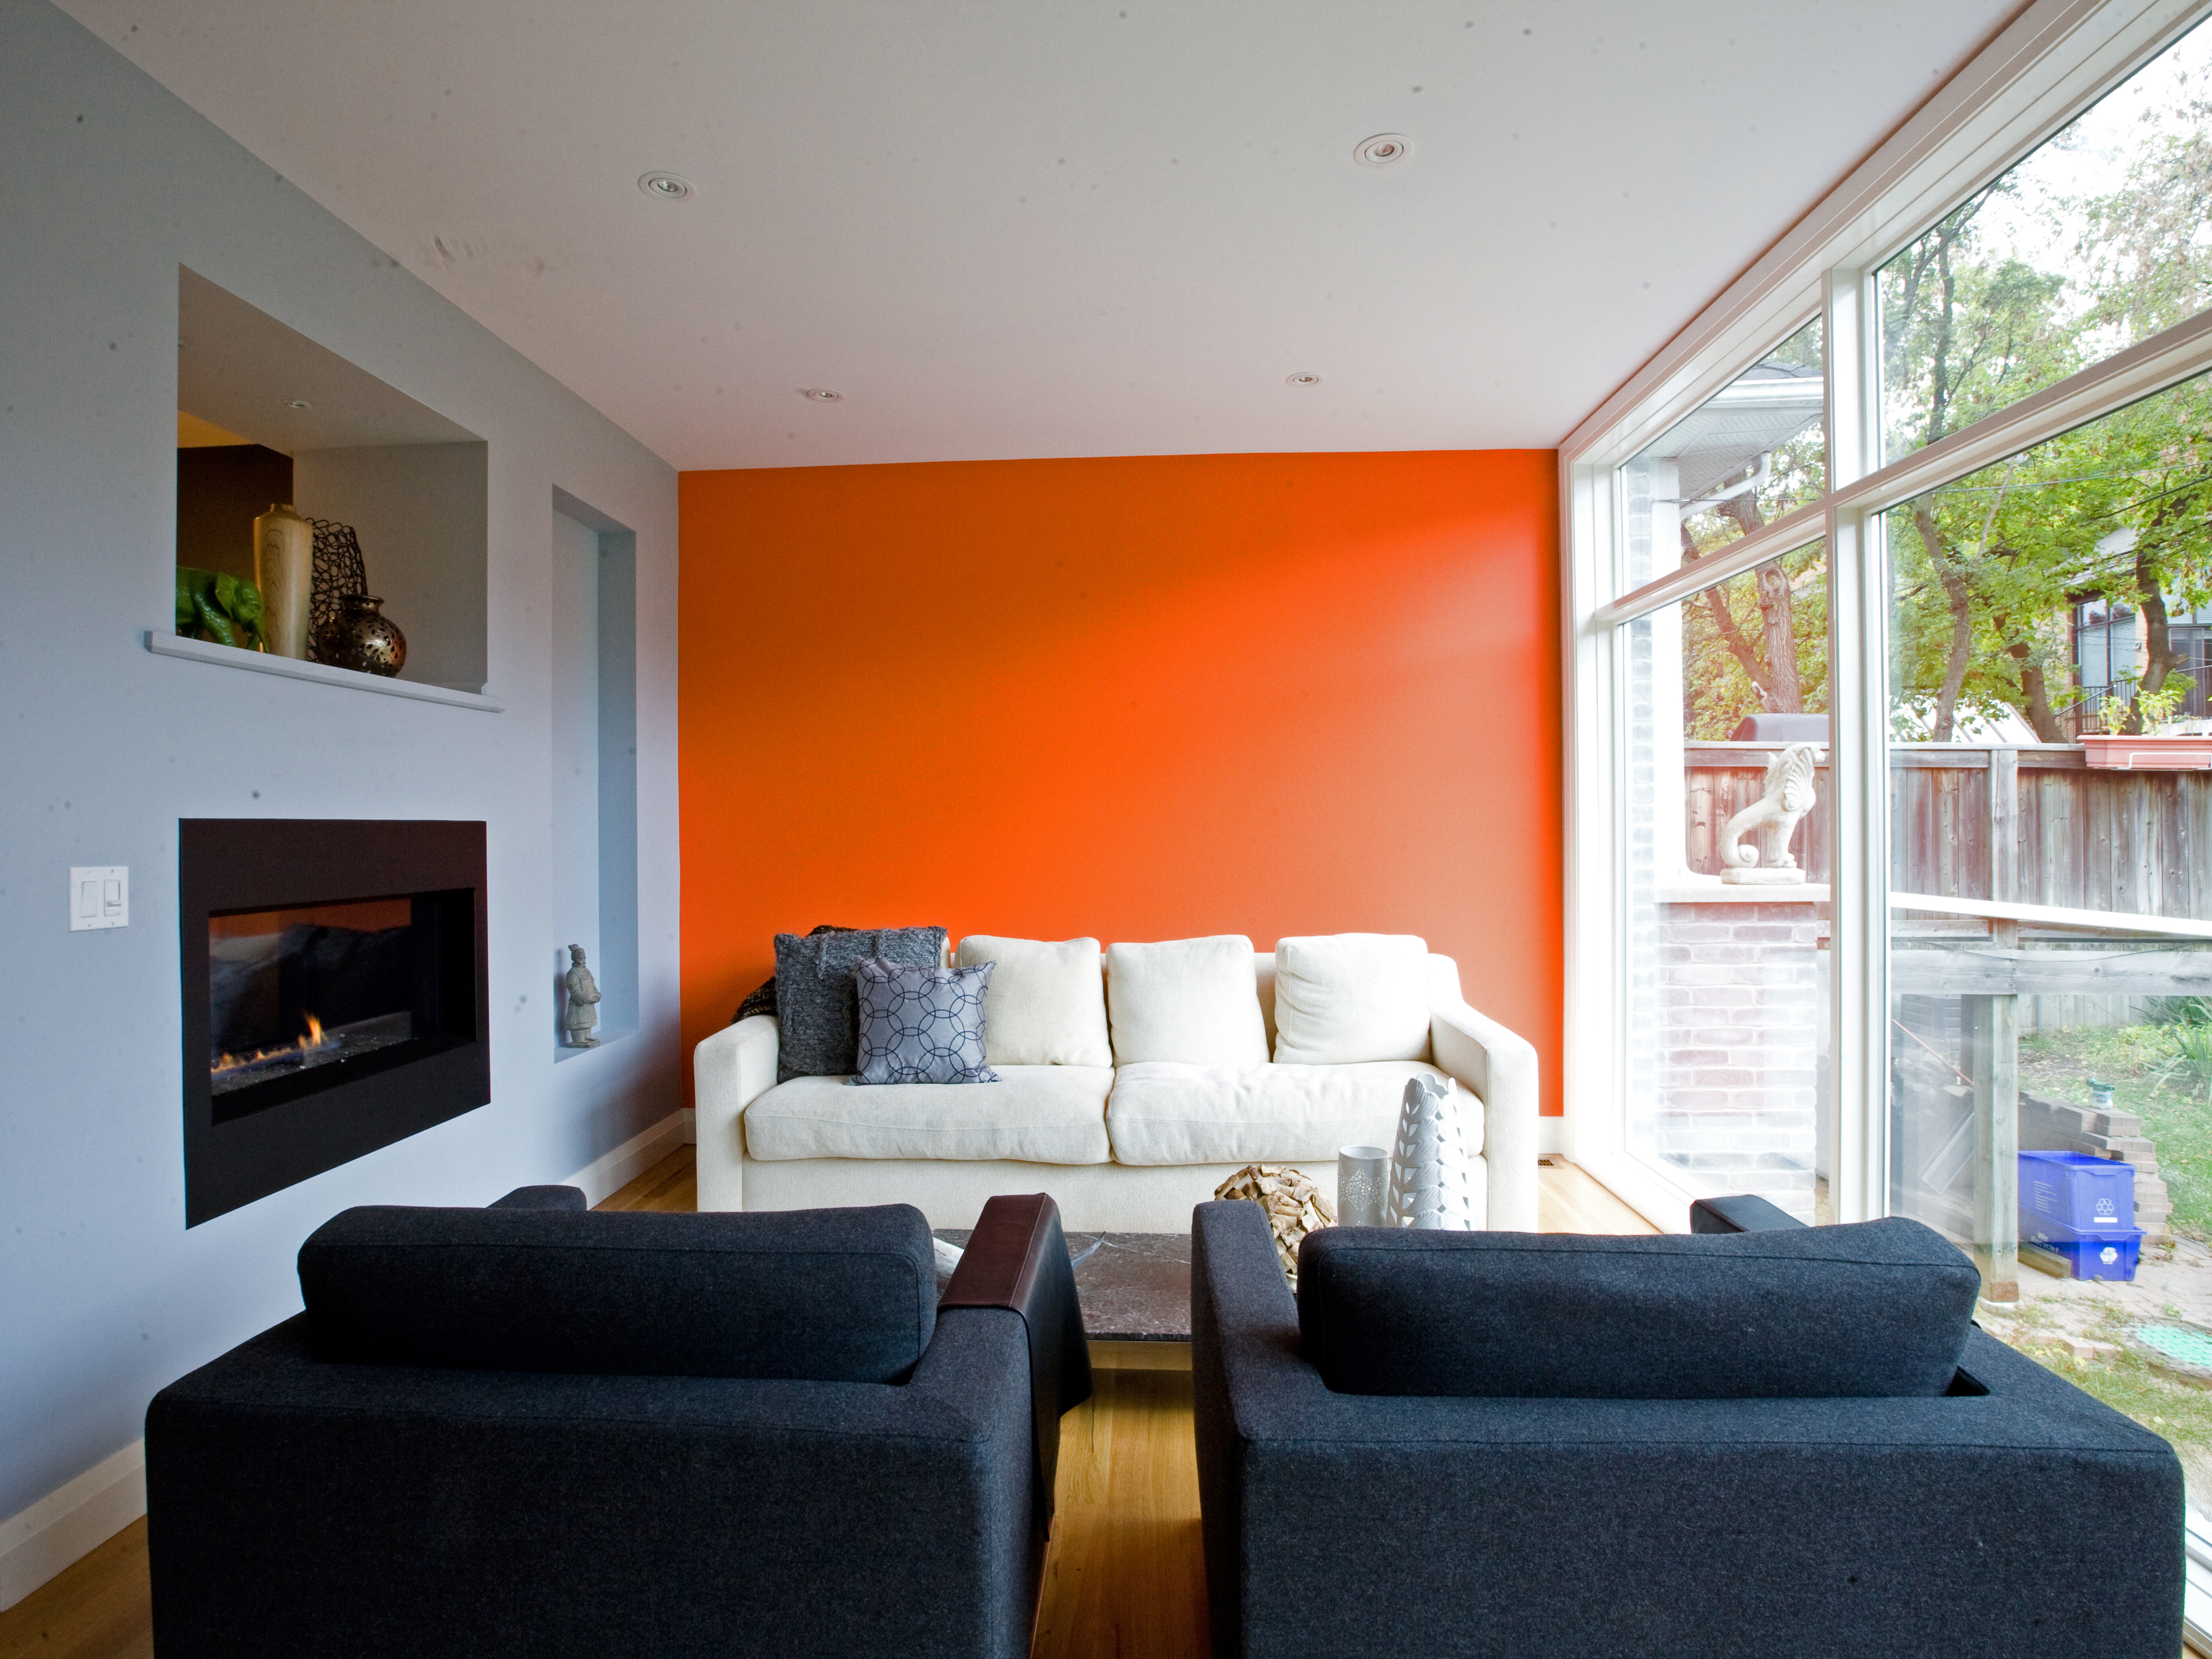 Bedroom paint ideas accent wall orange - Orange Accent Wall In Living Room Euskal Net